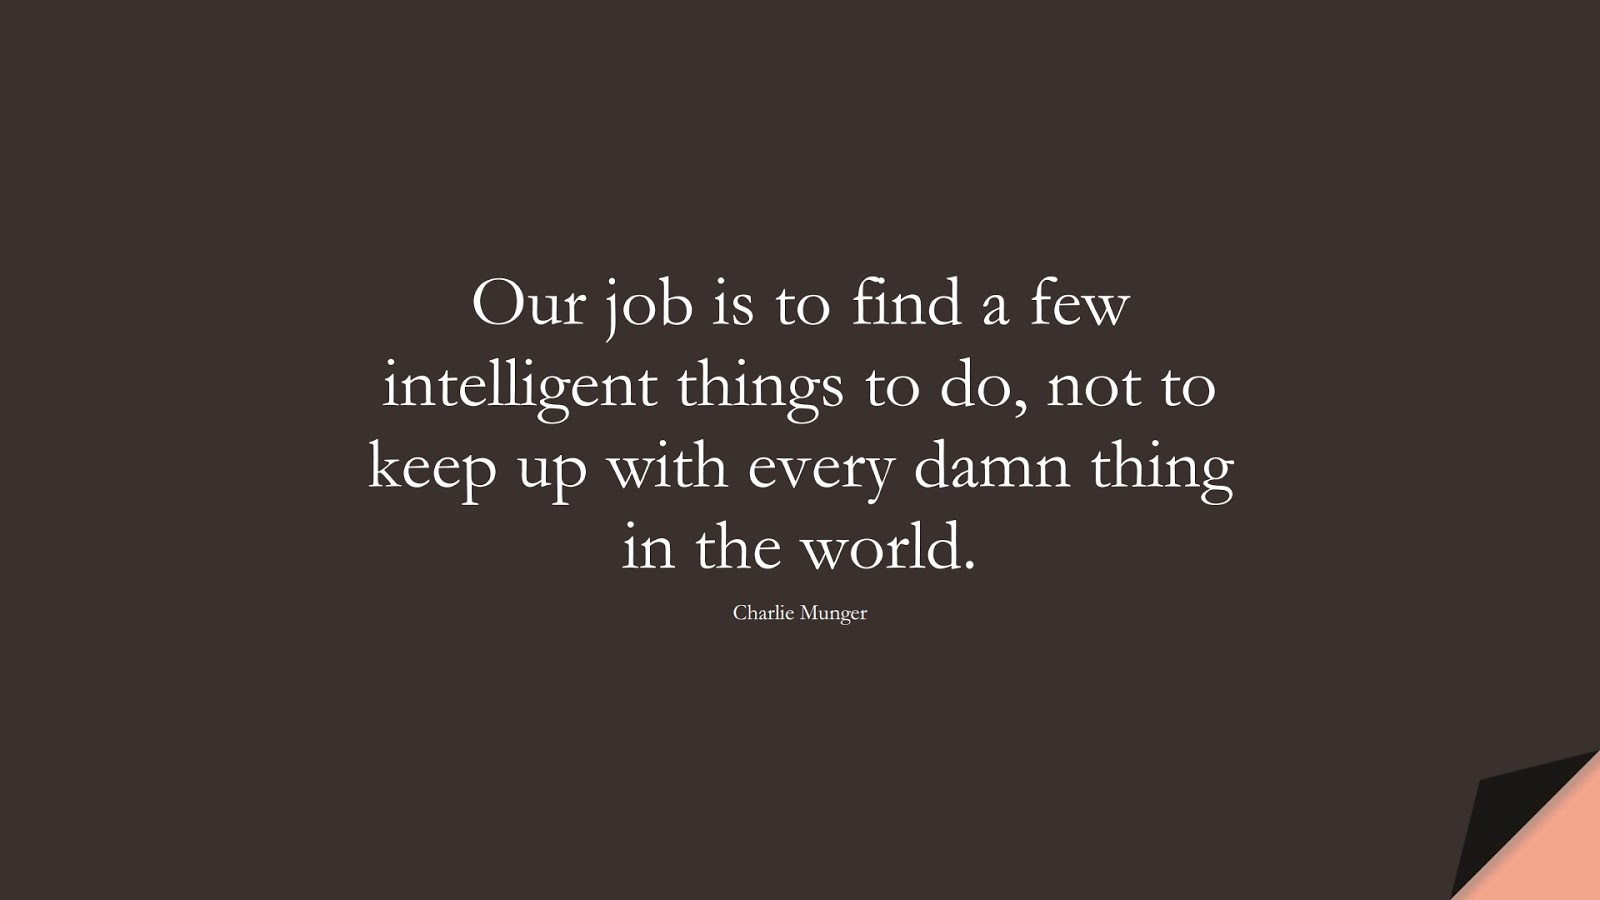 Our job is to find a few intelligent things to do, not to keep up with every damn thing in the world. (Charlie Munger);  #StoicQuotes